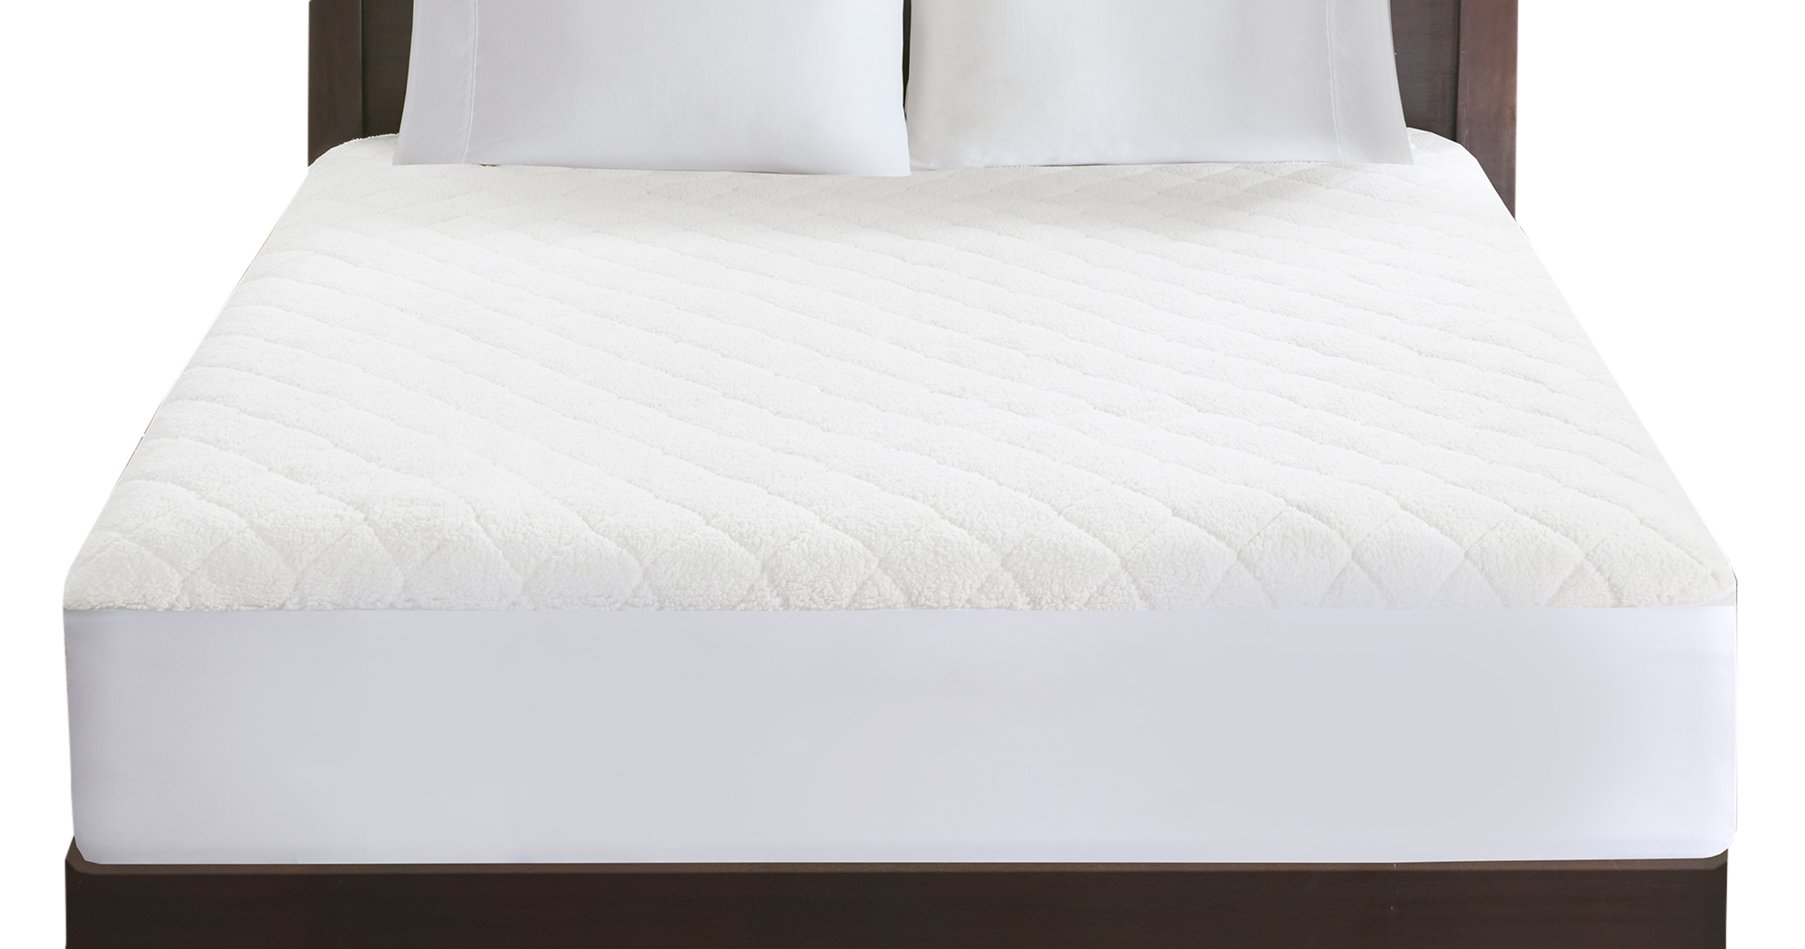 Woolrich WR55-1778 Heated Sherpa Mattress Pad Twin White,Twin by Woolrich (Image #1)